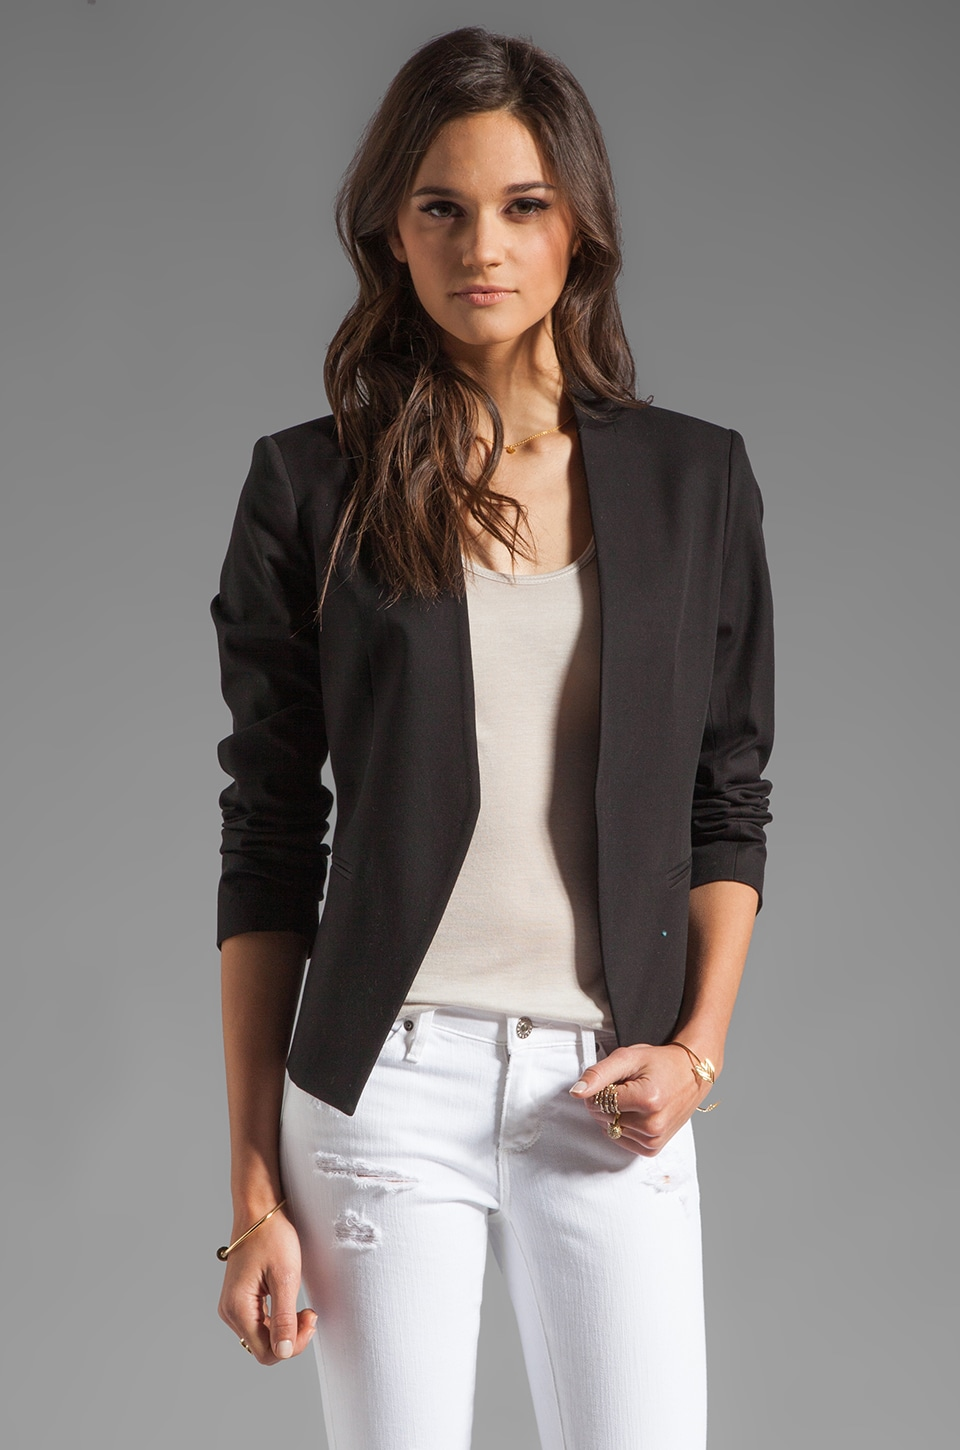 Theory Bistretch Lanai Blazer in Black